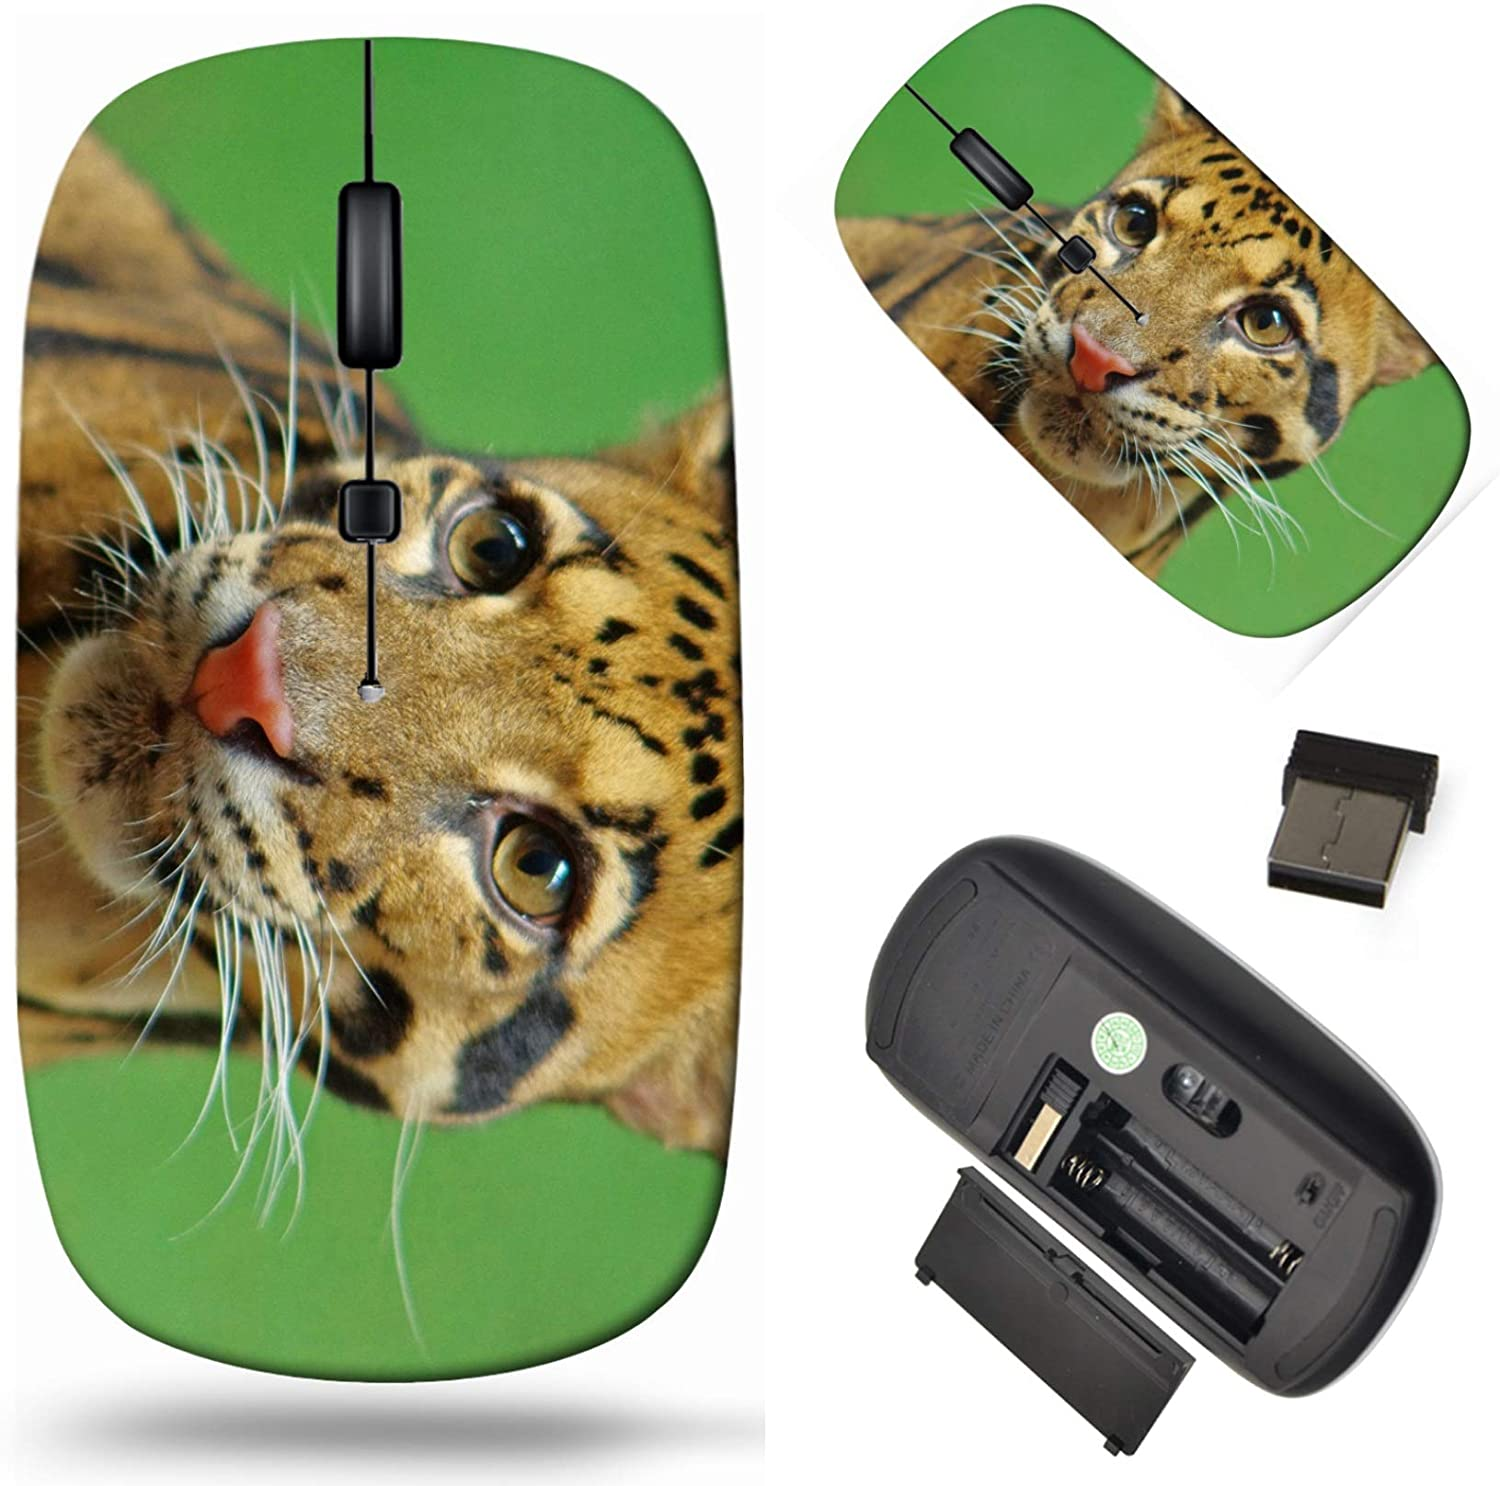 Wireless Computer Mouse 2.4G Soldering with Receiver Cor Laptop Inventory cleanup selling sale USB